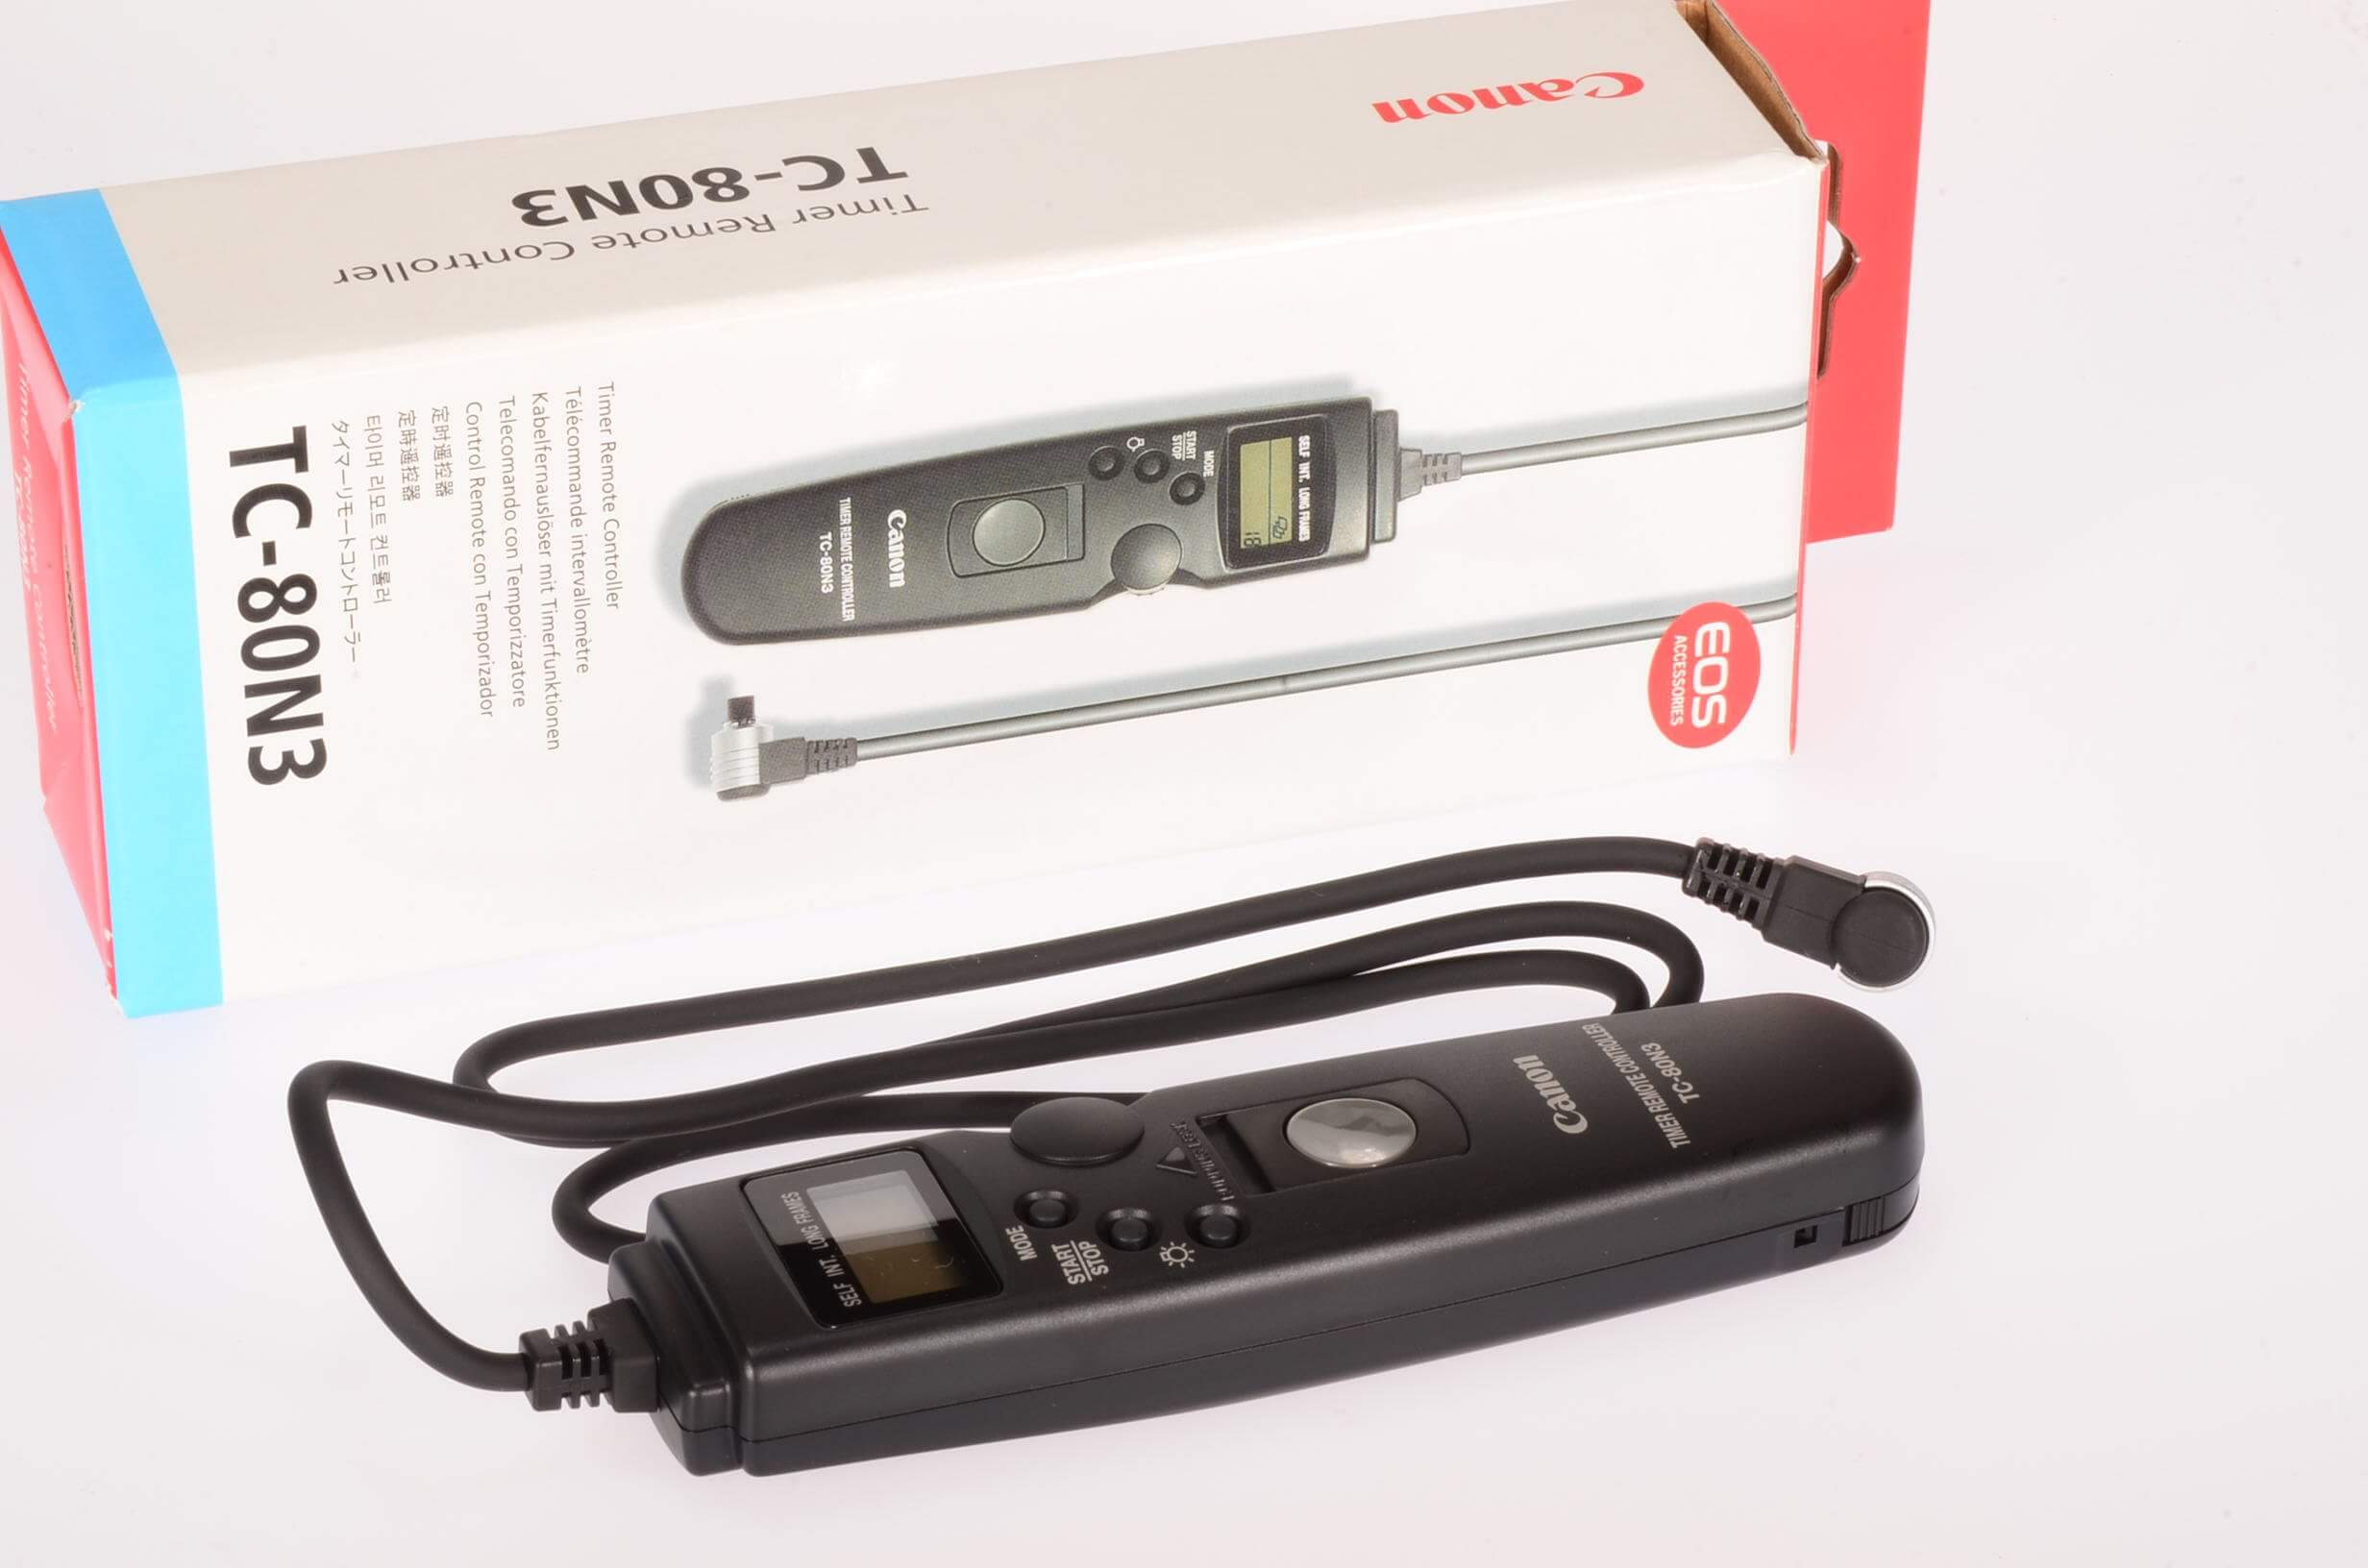 Canon TC-80N3 Timer Remote Controller, boxed and unused